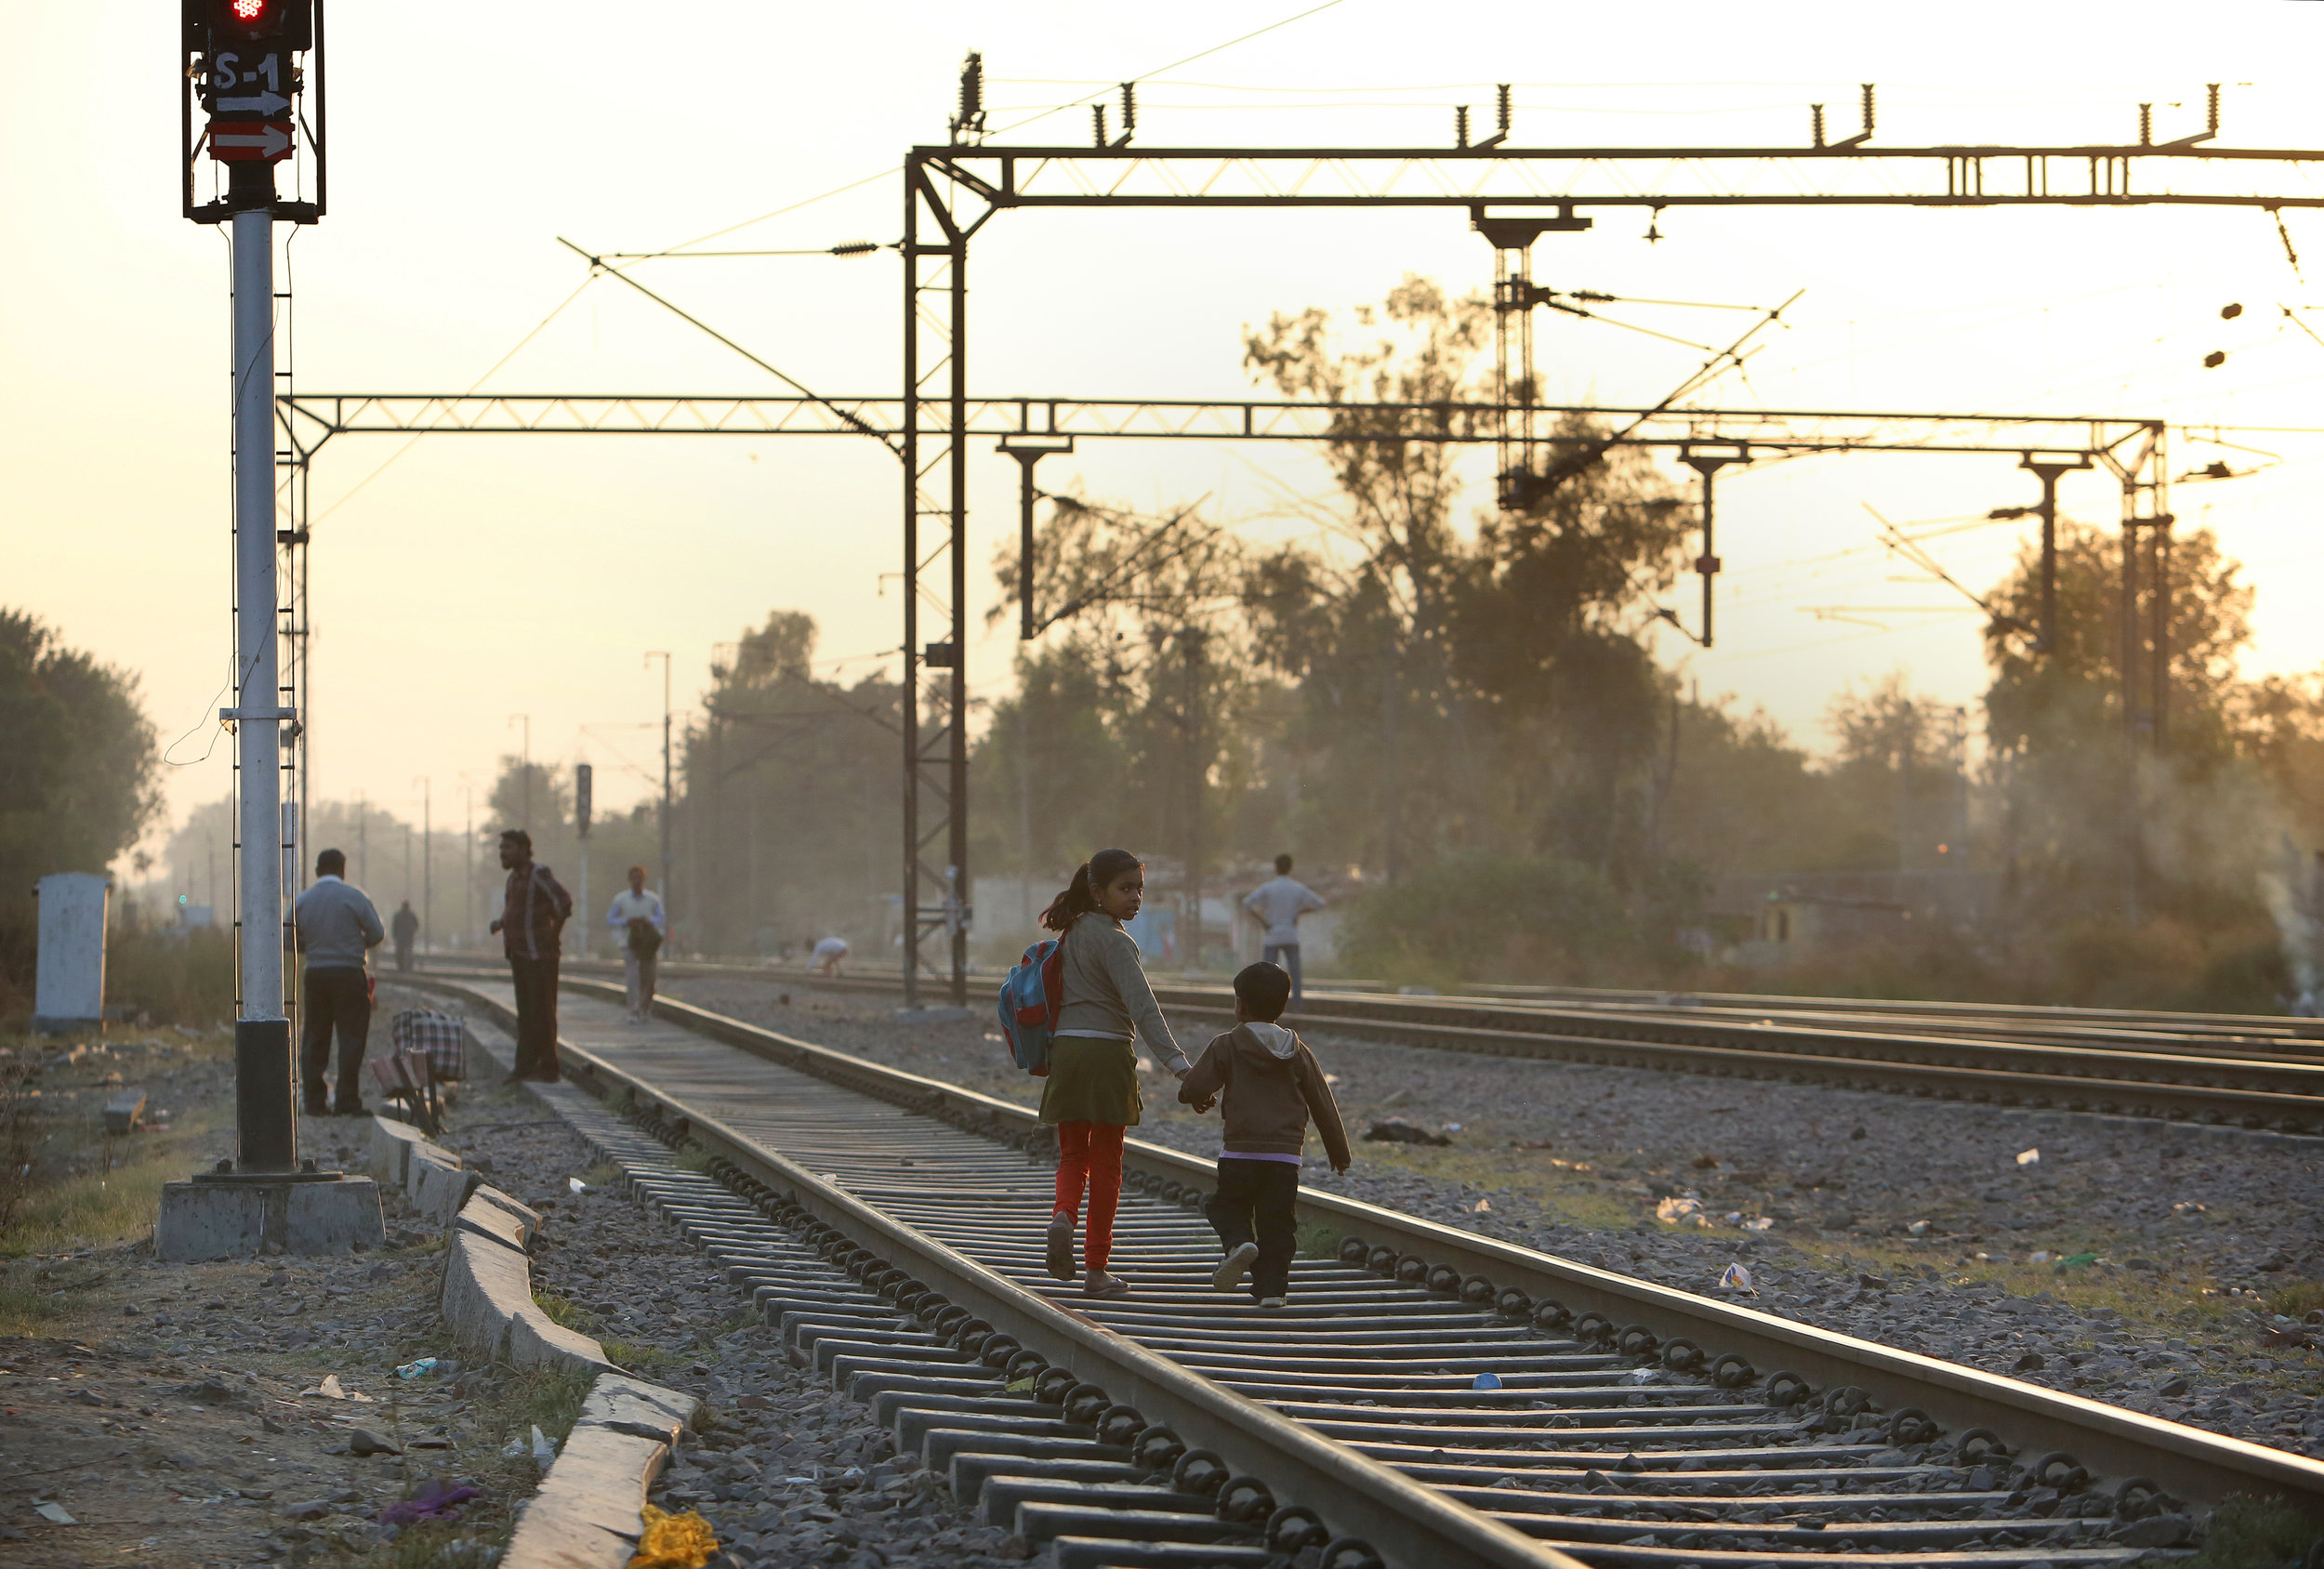 Children walk home on the railway track which runs alongside the Kathputli slum colony of New Delhi, India, December 10th, 2014. 40,000 people live in the slum, speaking 11 different languages, which is popularly known for being the worlds largest colony of street performers, including magicians, snake charmers, acrobats, singers, dancers, actors, traditional healers and musicians and puppeteers. Their livelihood is under threat however as the Delhi government has obtained contracts to demolish the colony to make way for developers to build high-rise apartments.